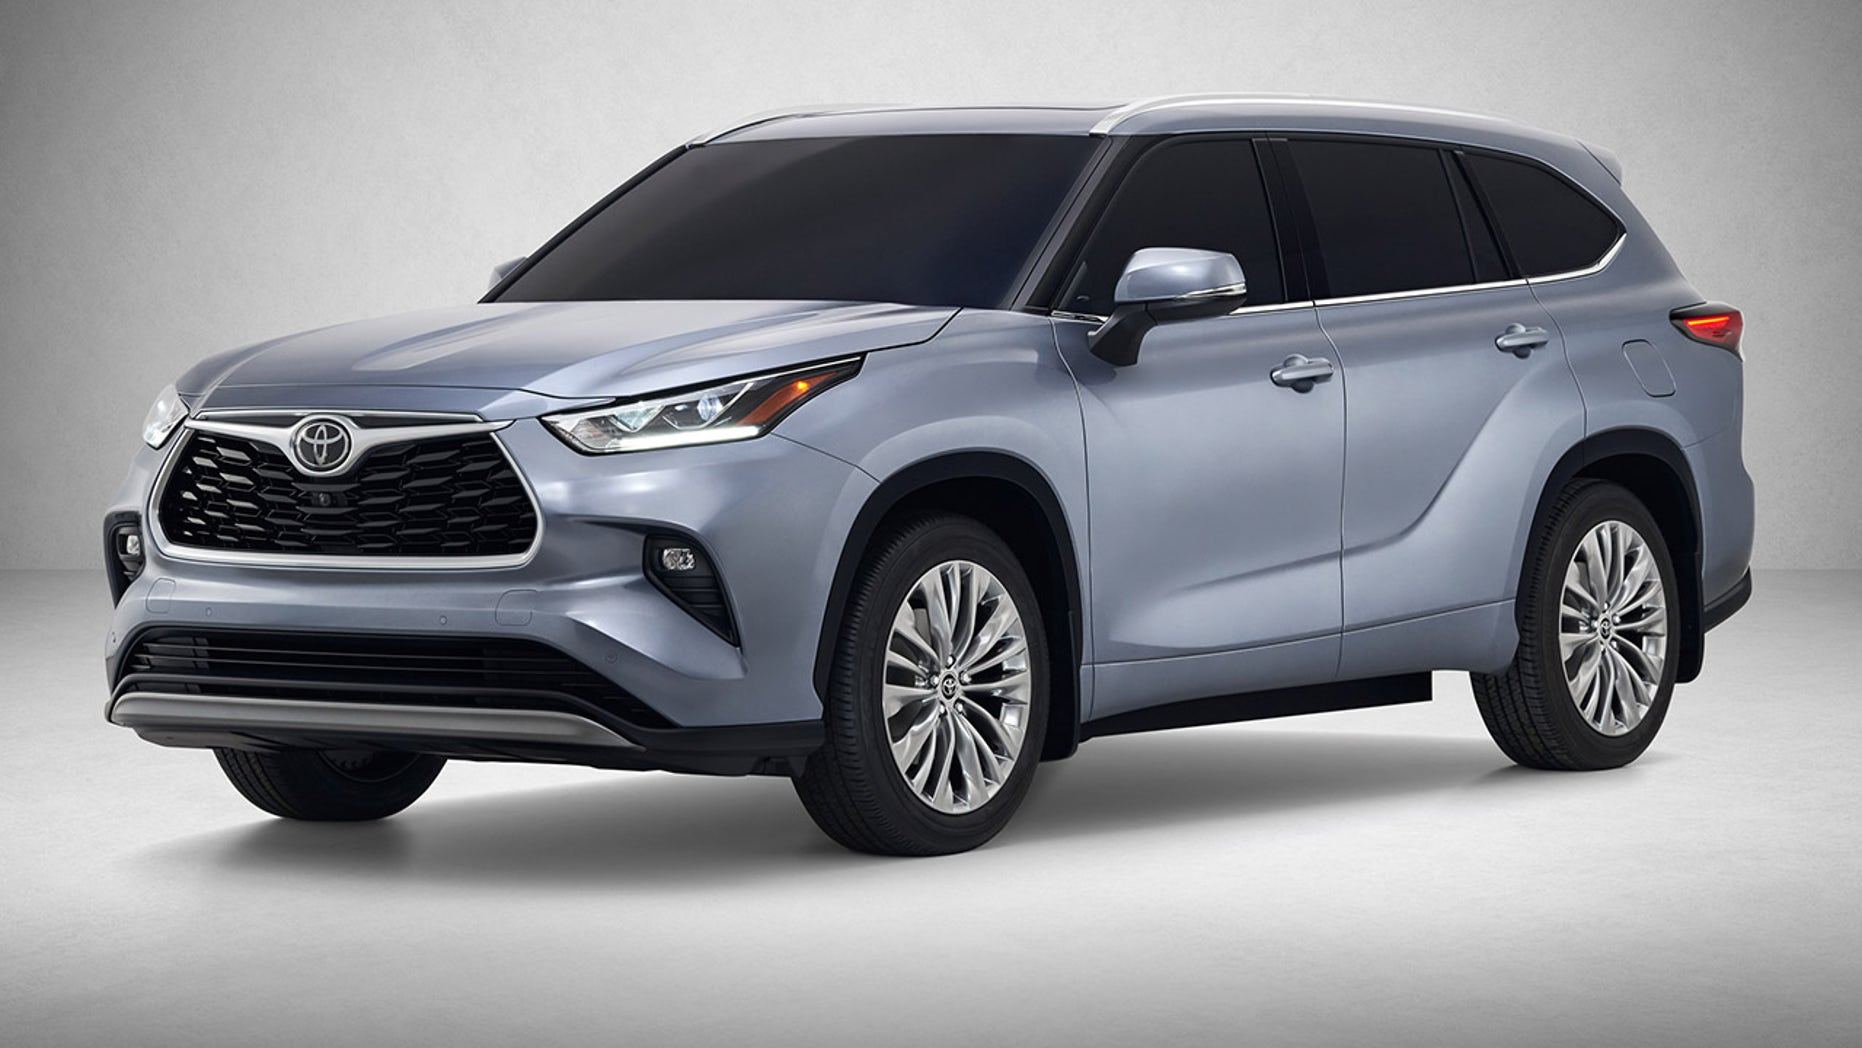 Westlake Legal Group h3 The 2020 Toyota Highlander aims for the top at the New York International Auto Show Gary Gastelu fox-news/news-events/new-york-auto-show fox-news/auto/style/suv fox-news/auto/make/toyota fox-news/auto/attributes/hybrids fox news fnc/auto fnc article 20876b6b-9a85-5e92-bcd0-5e509a8c130c